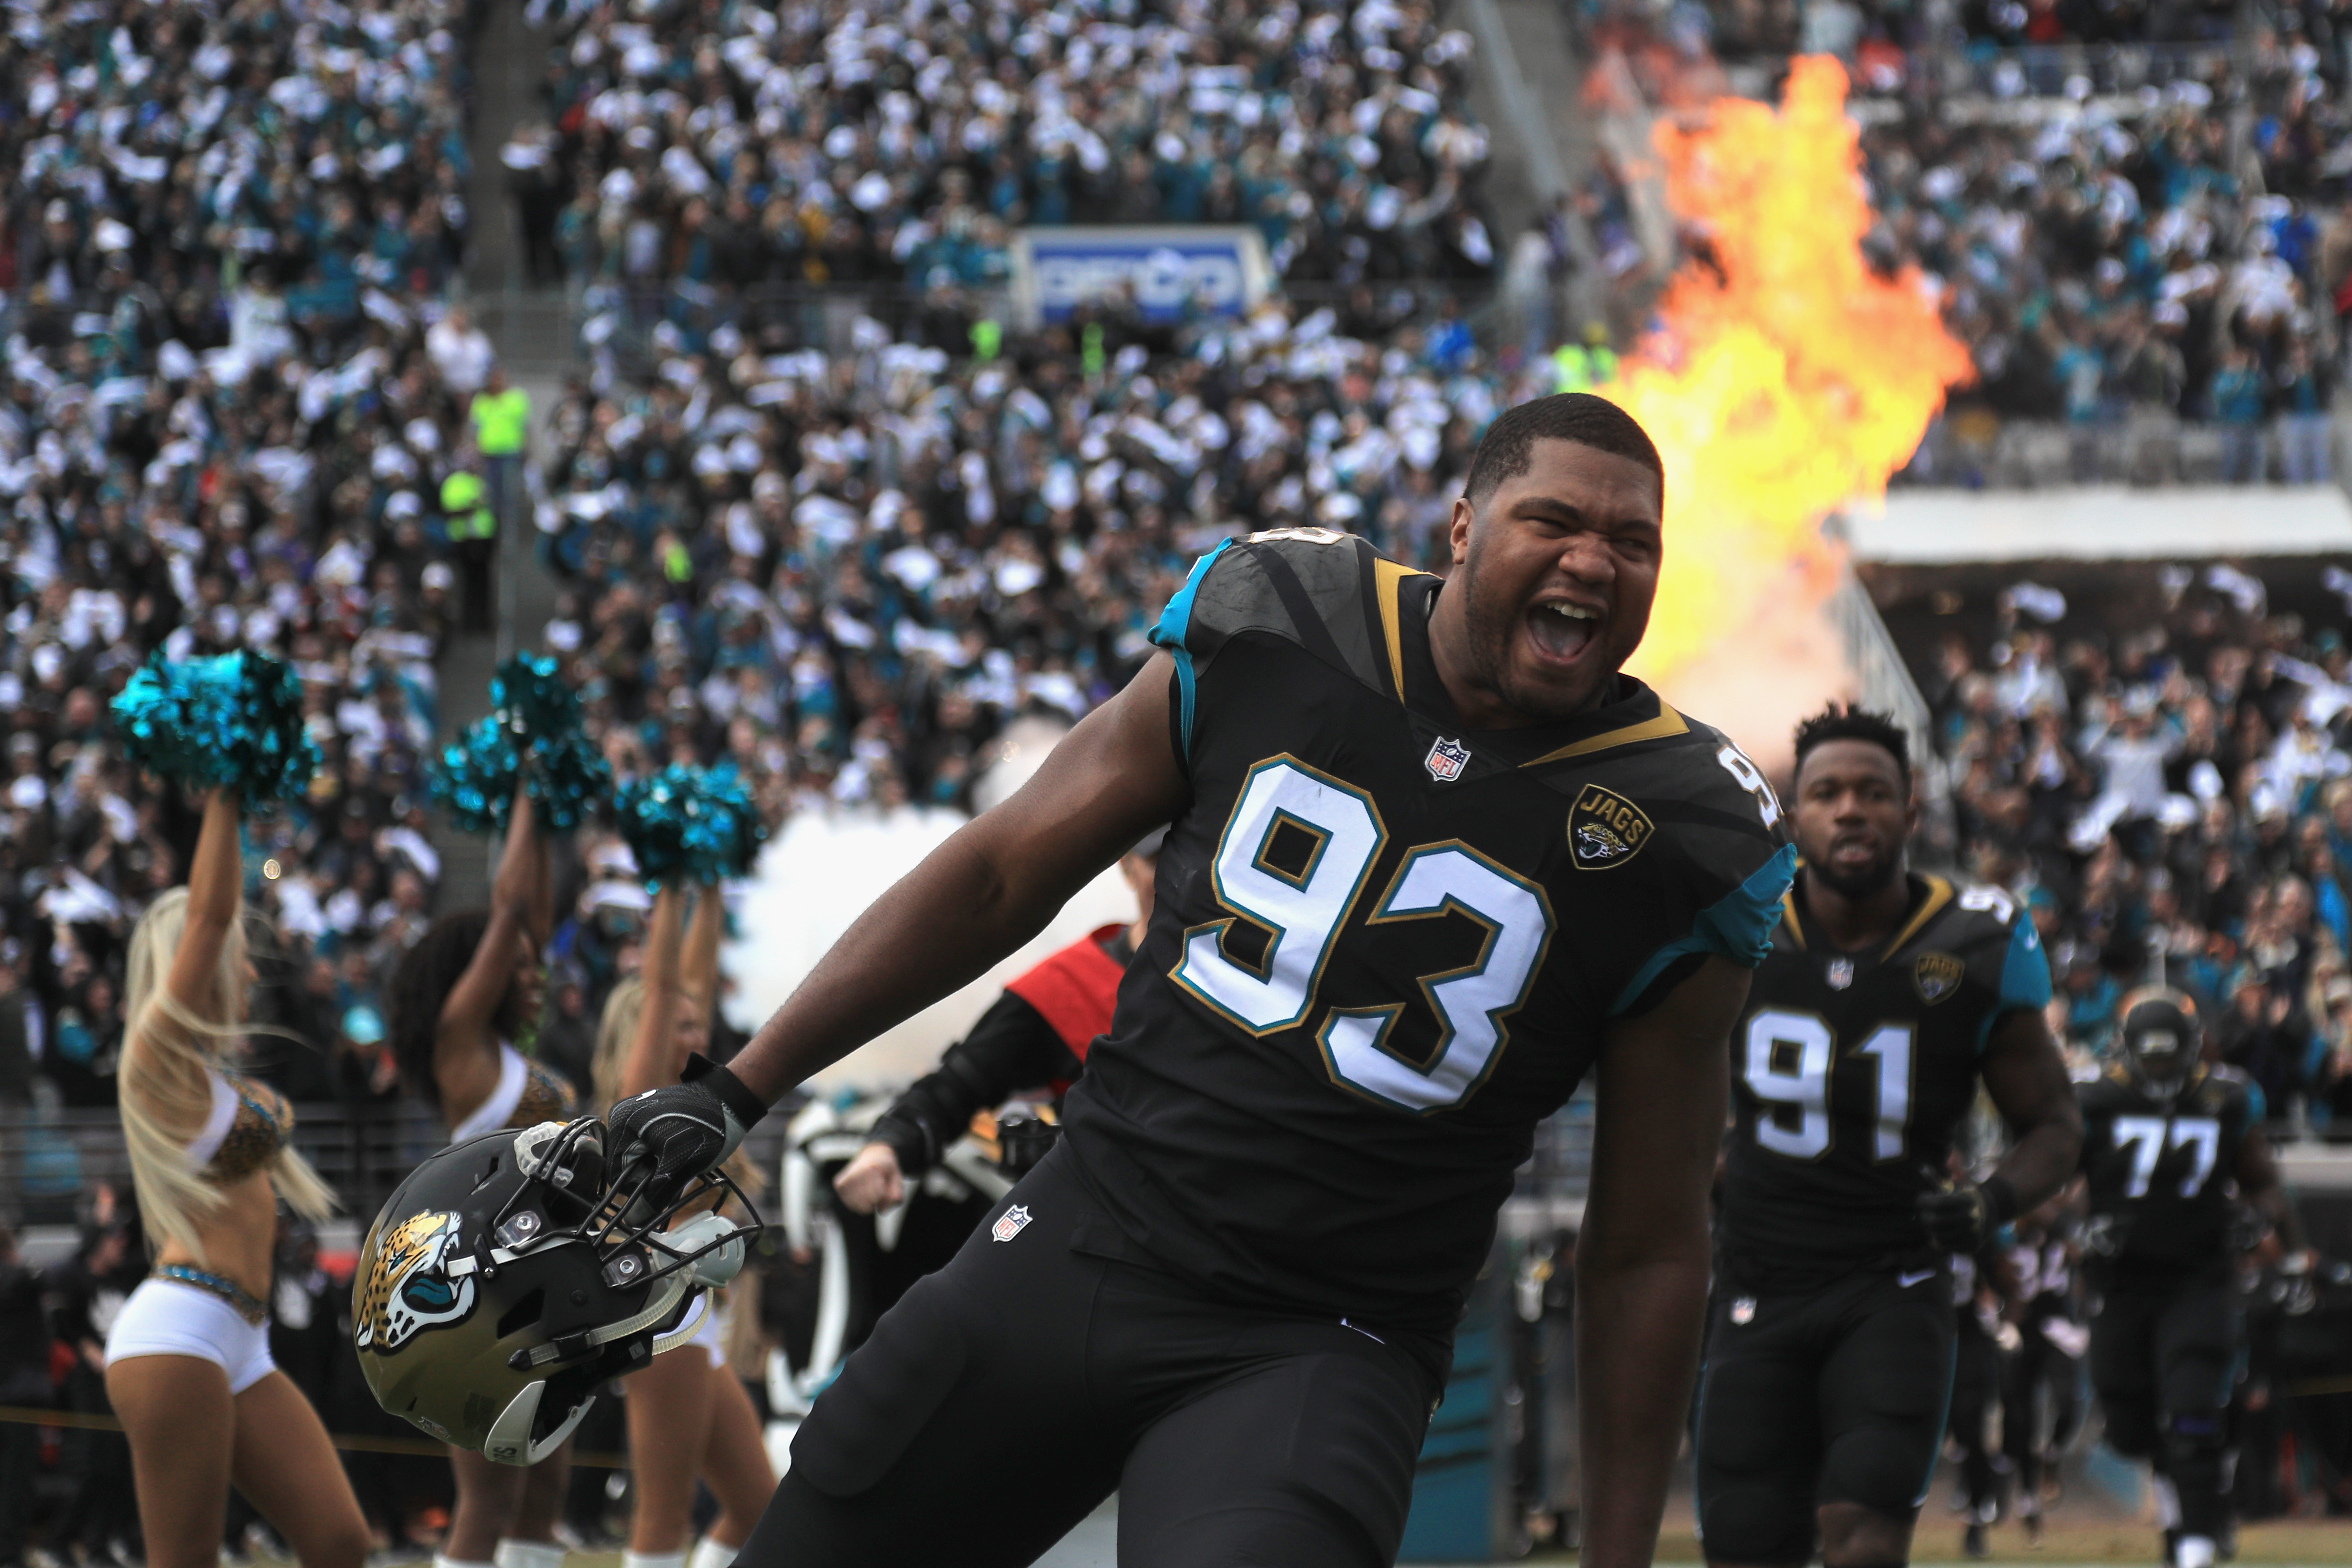 Bengals fans say thanks by donating to Bortles Foundation for beating Steelers